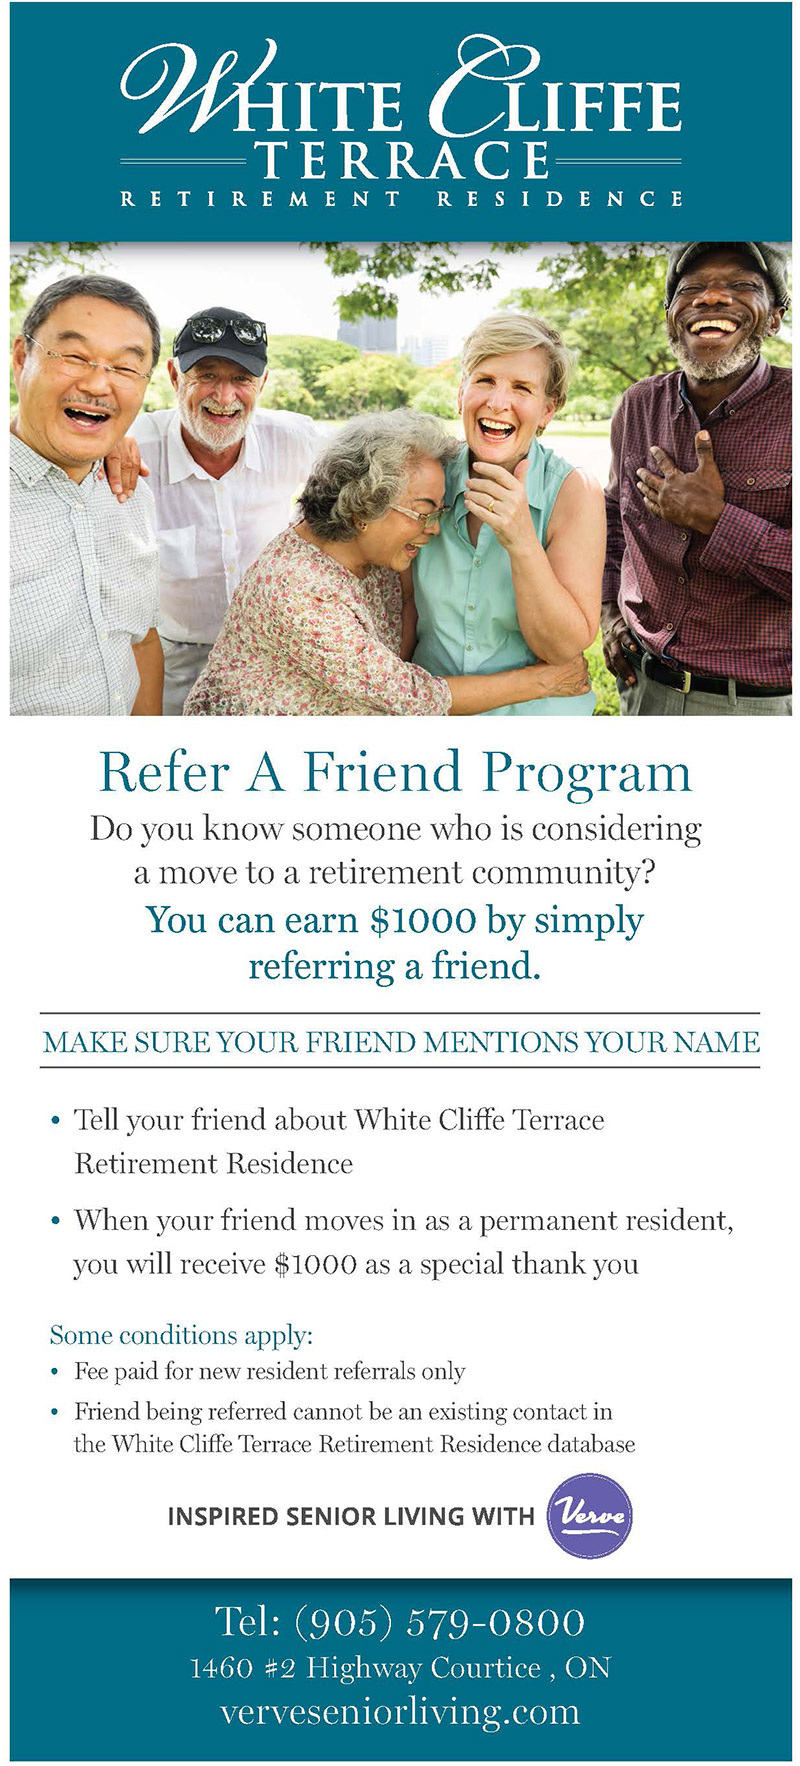 Refer a Friend Program at White Cliffe Terrace